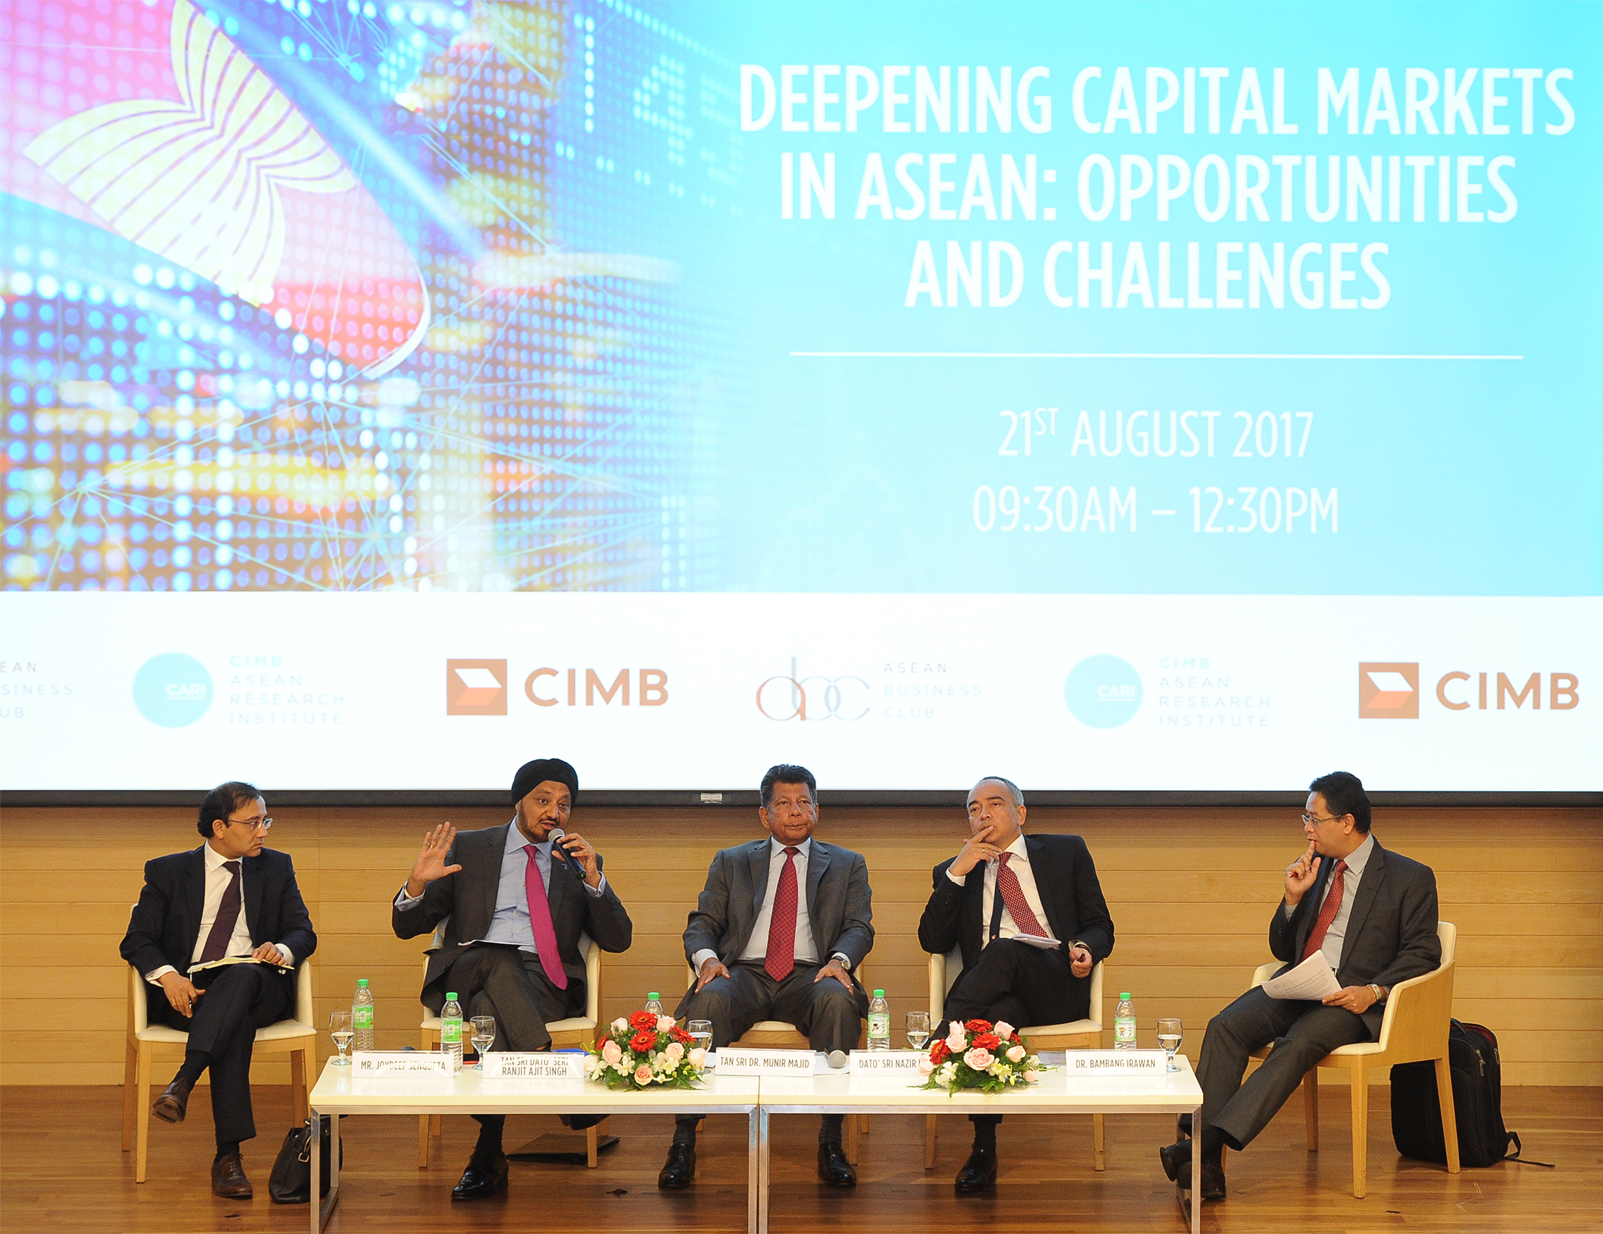 Deepening Capital Markets in ASEAN: Opportunities and Challenges